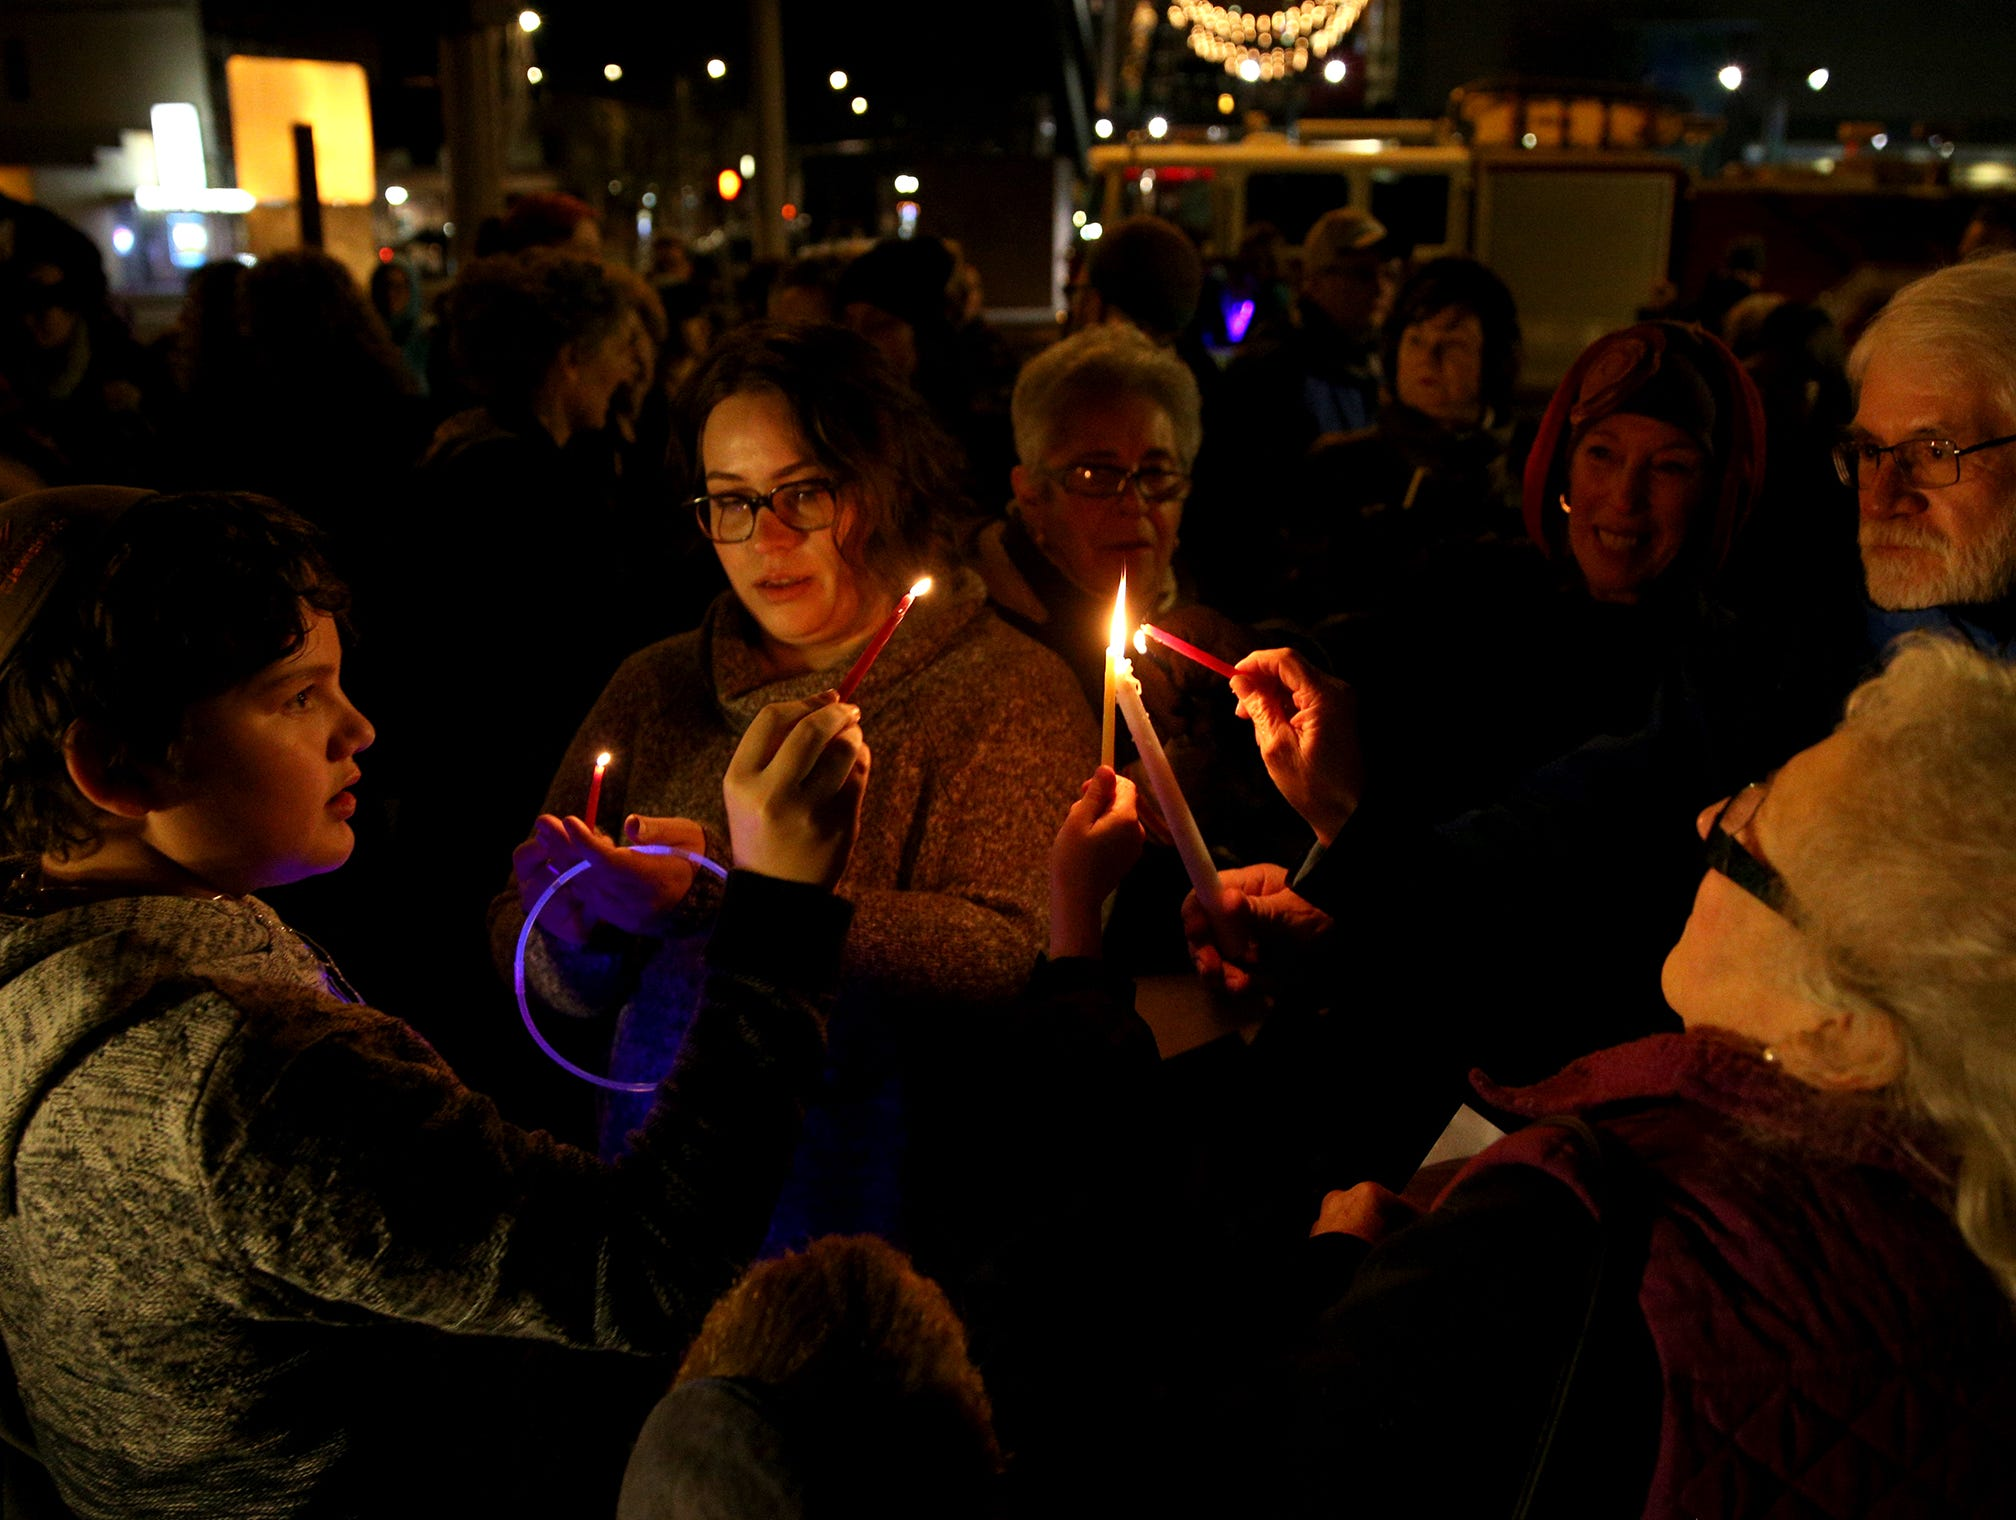 Attendees of a menorah lighting, hosted by the Chabad Center for Jewish Life, light candles on the first day of Hanukkah at Mirror Park in downtown Salem on Sunday, Dec. 2, 2018. The candles were lit to show solidarity with the Jewish community in Pittsburgh.